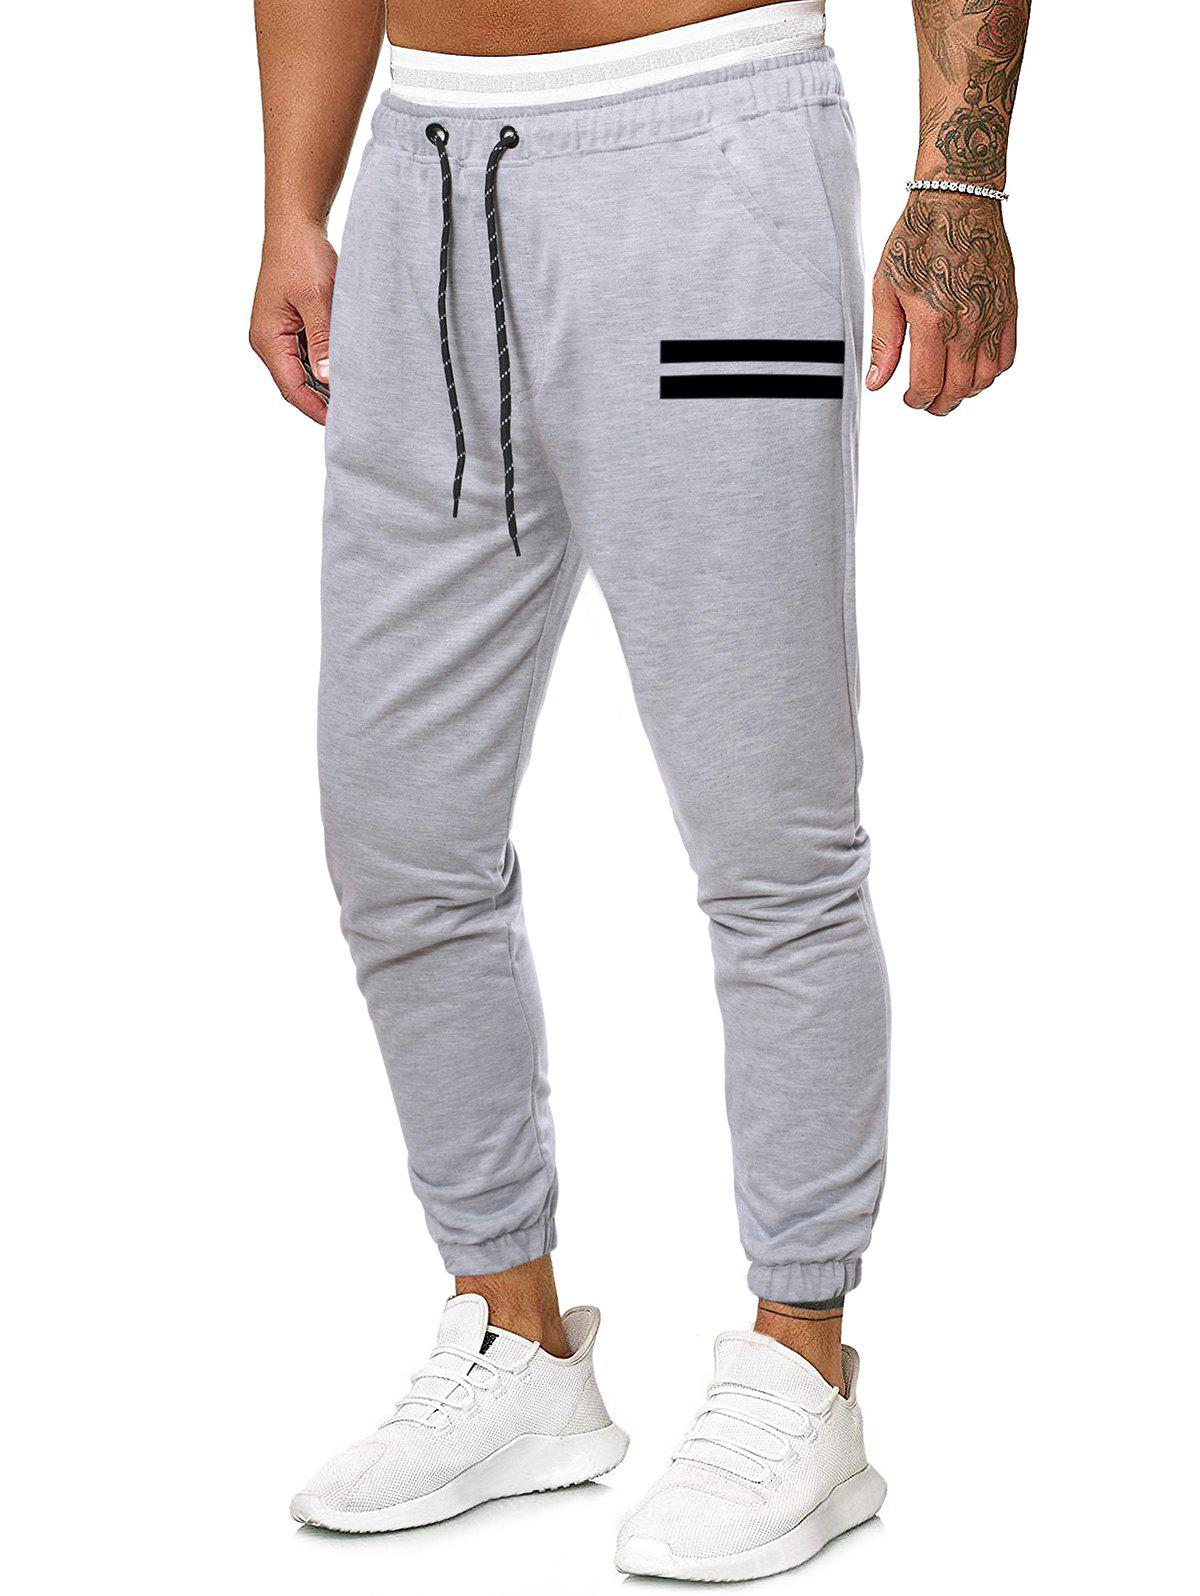 Unique Drawstring Striped Print Tapered Sports Pants